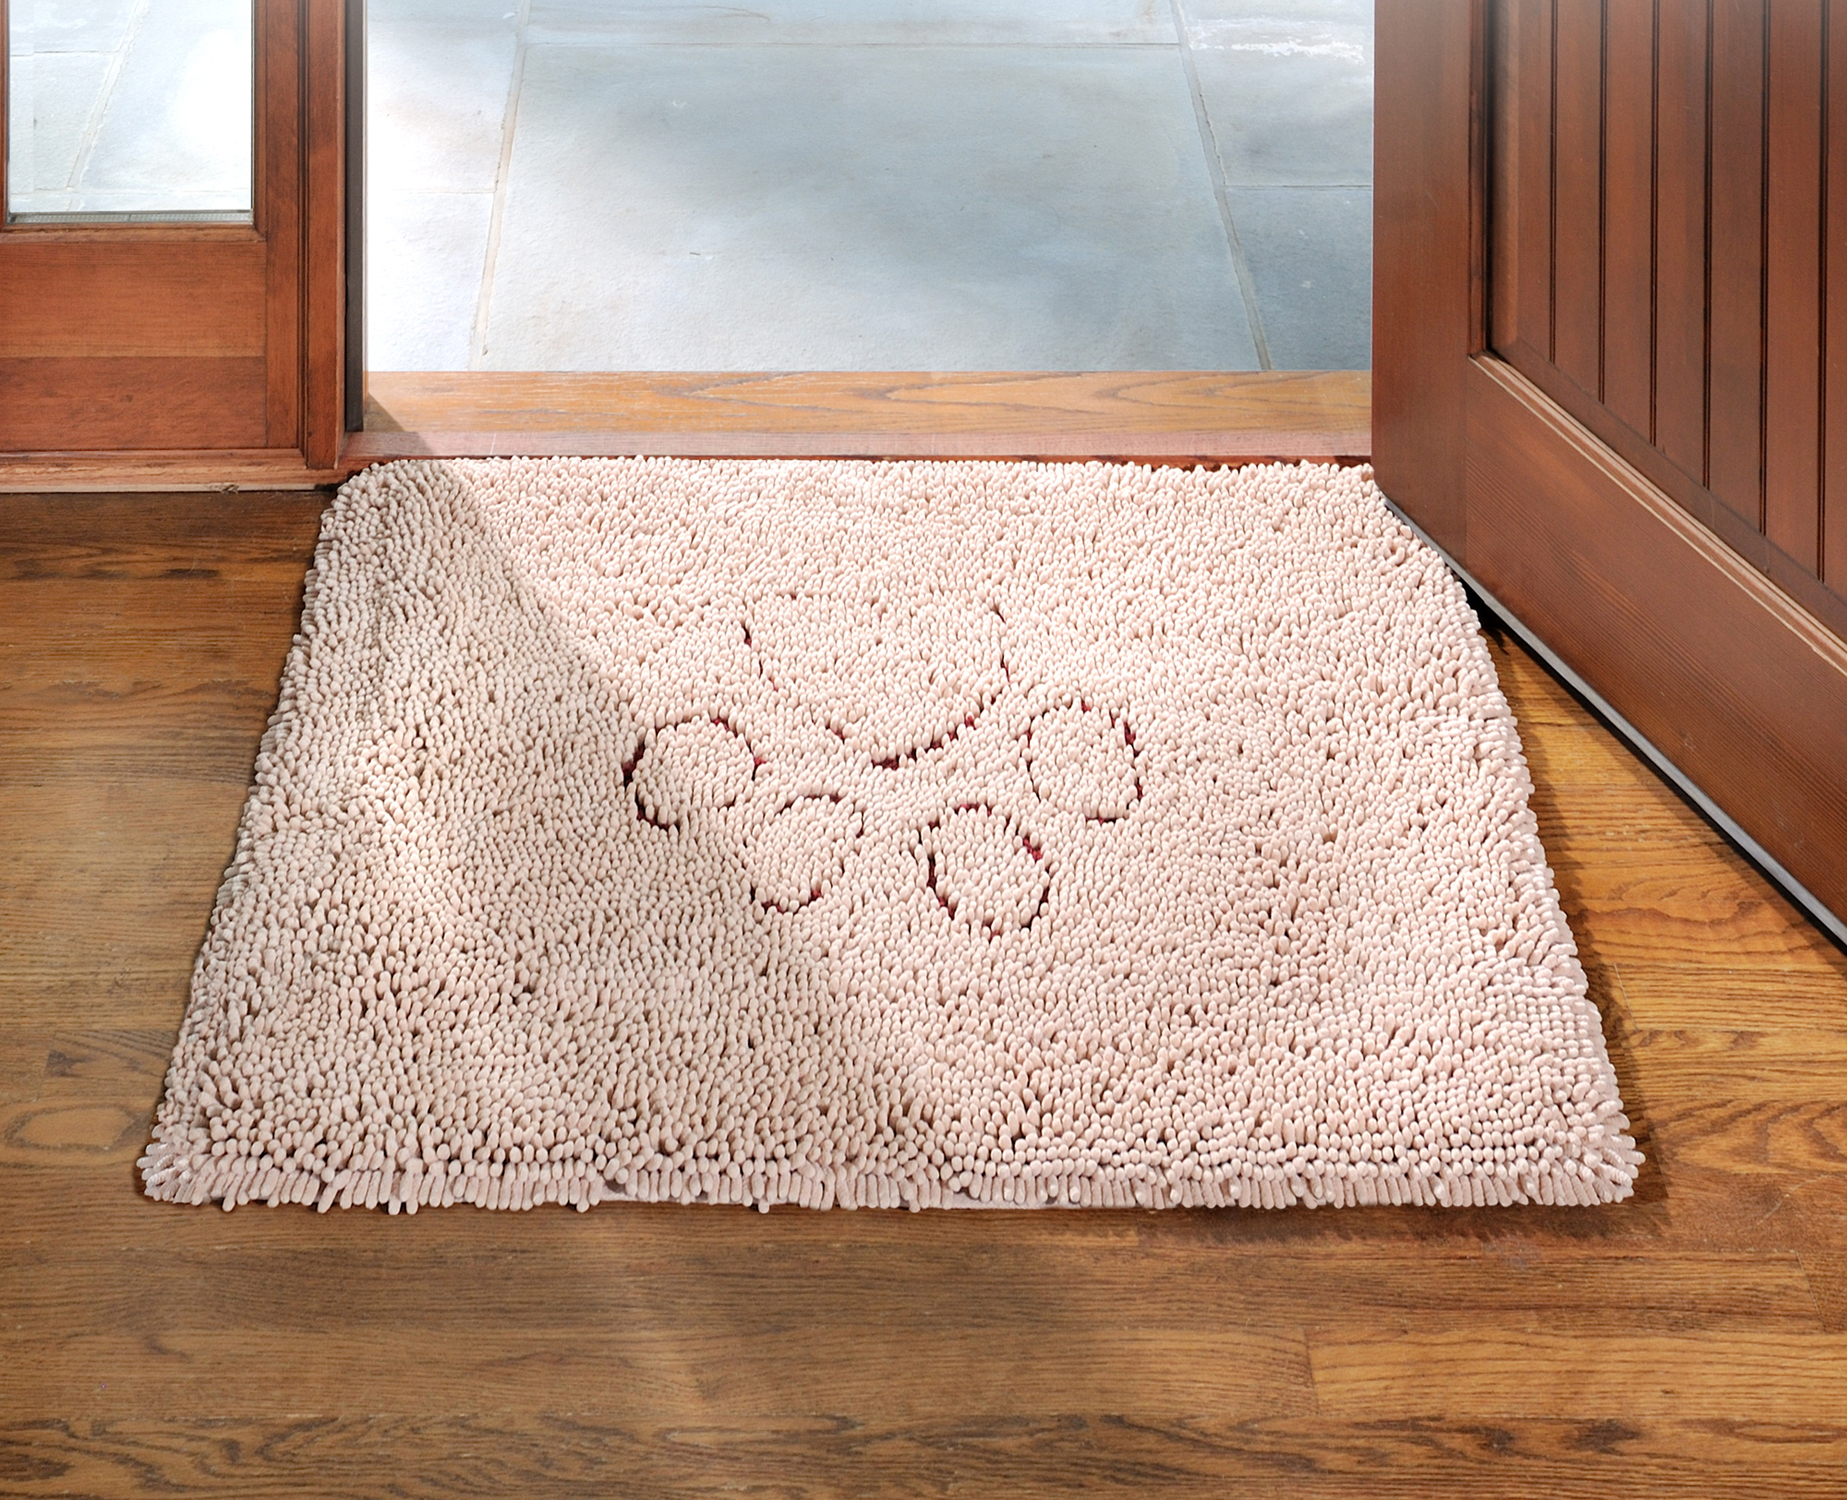 Dog Gone Smart Dirty Dog Doormat/Runner